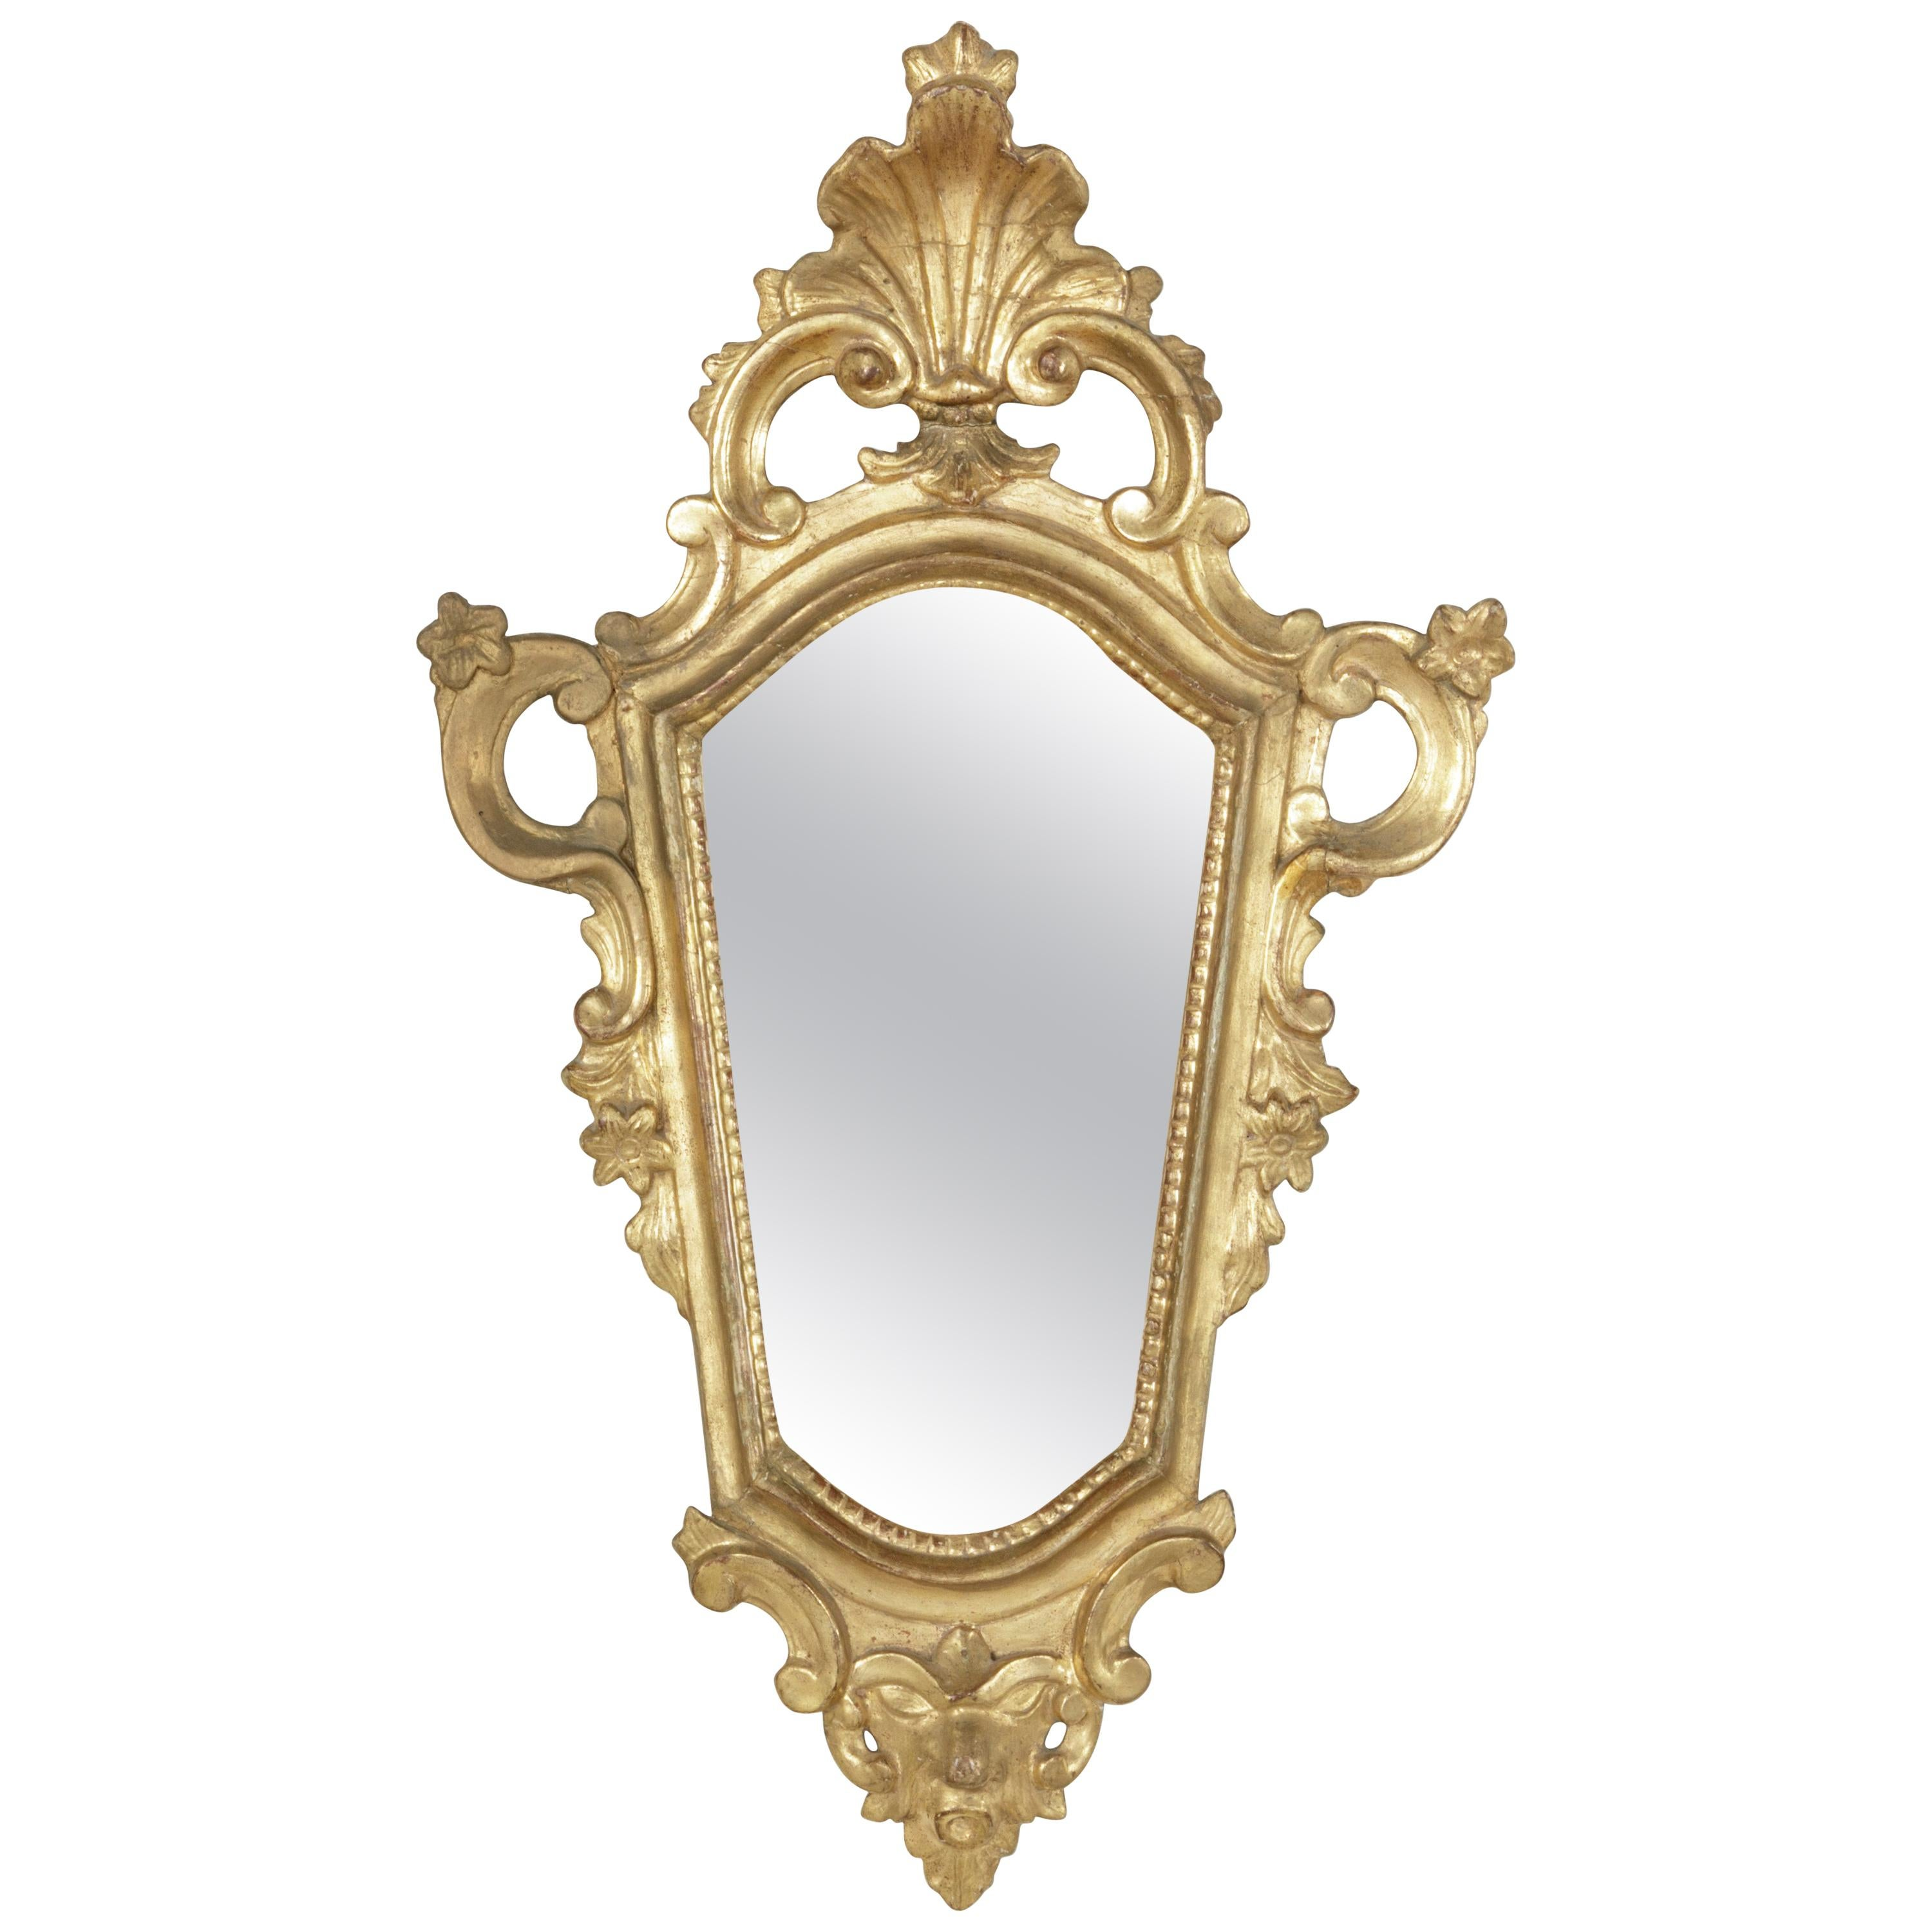 Early 18th Century French Regency Period Giltwood Mirror with Mercury Glass